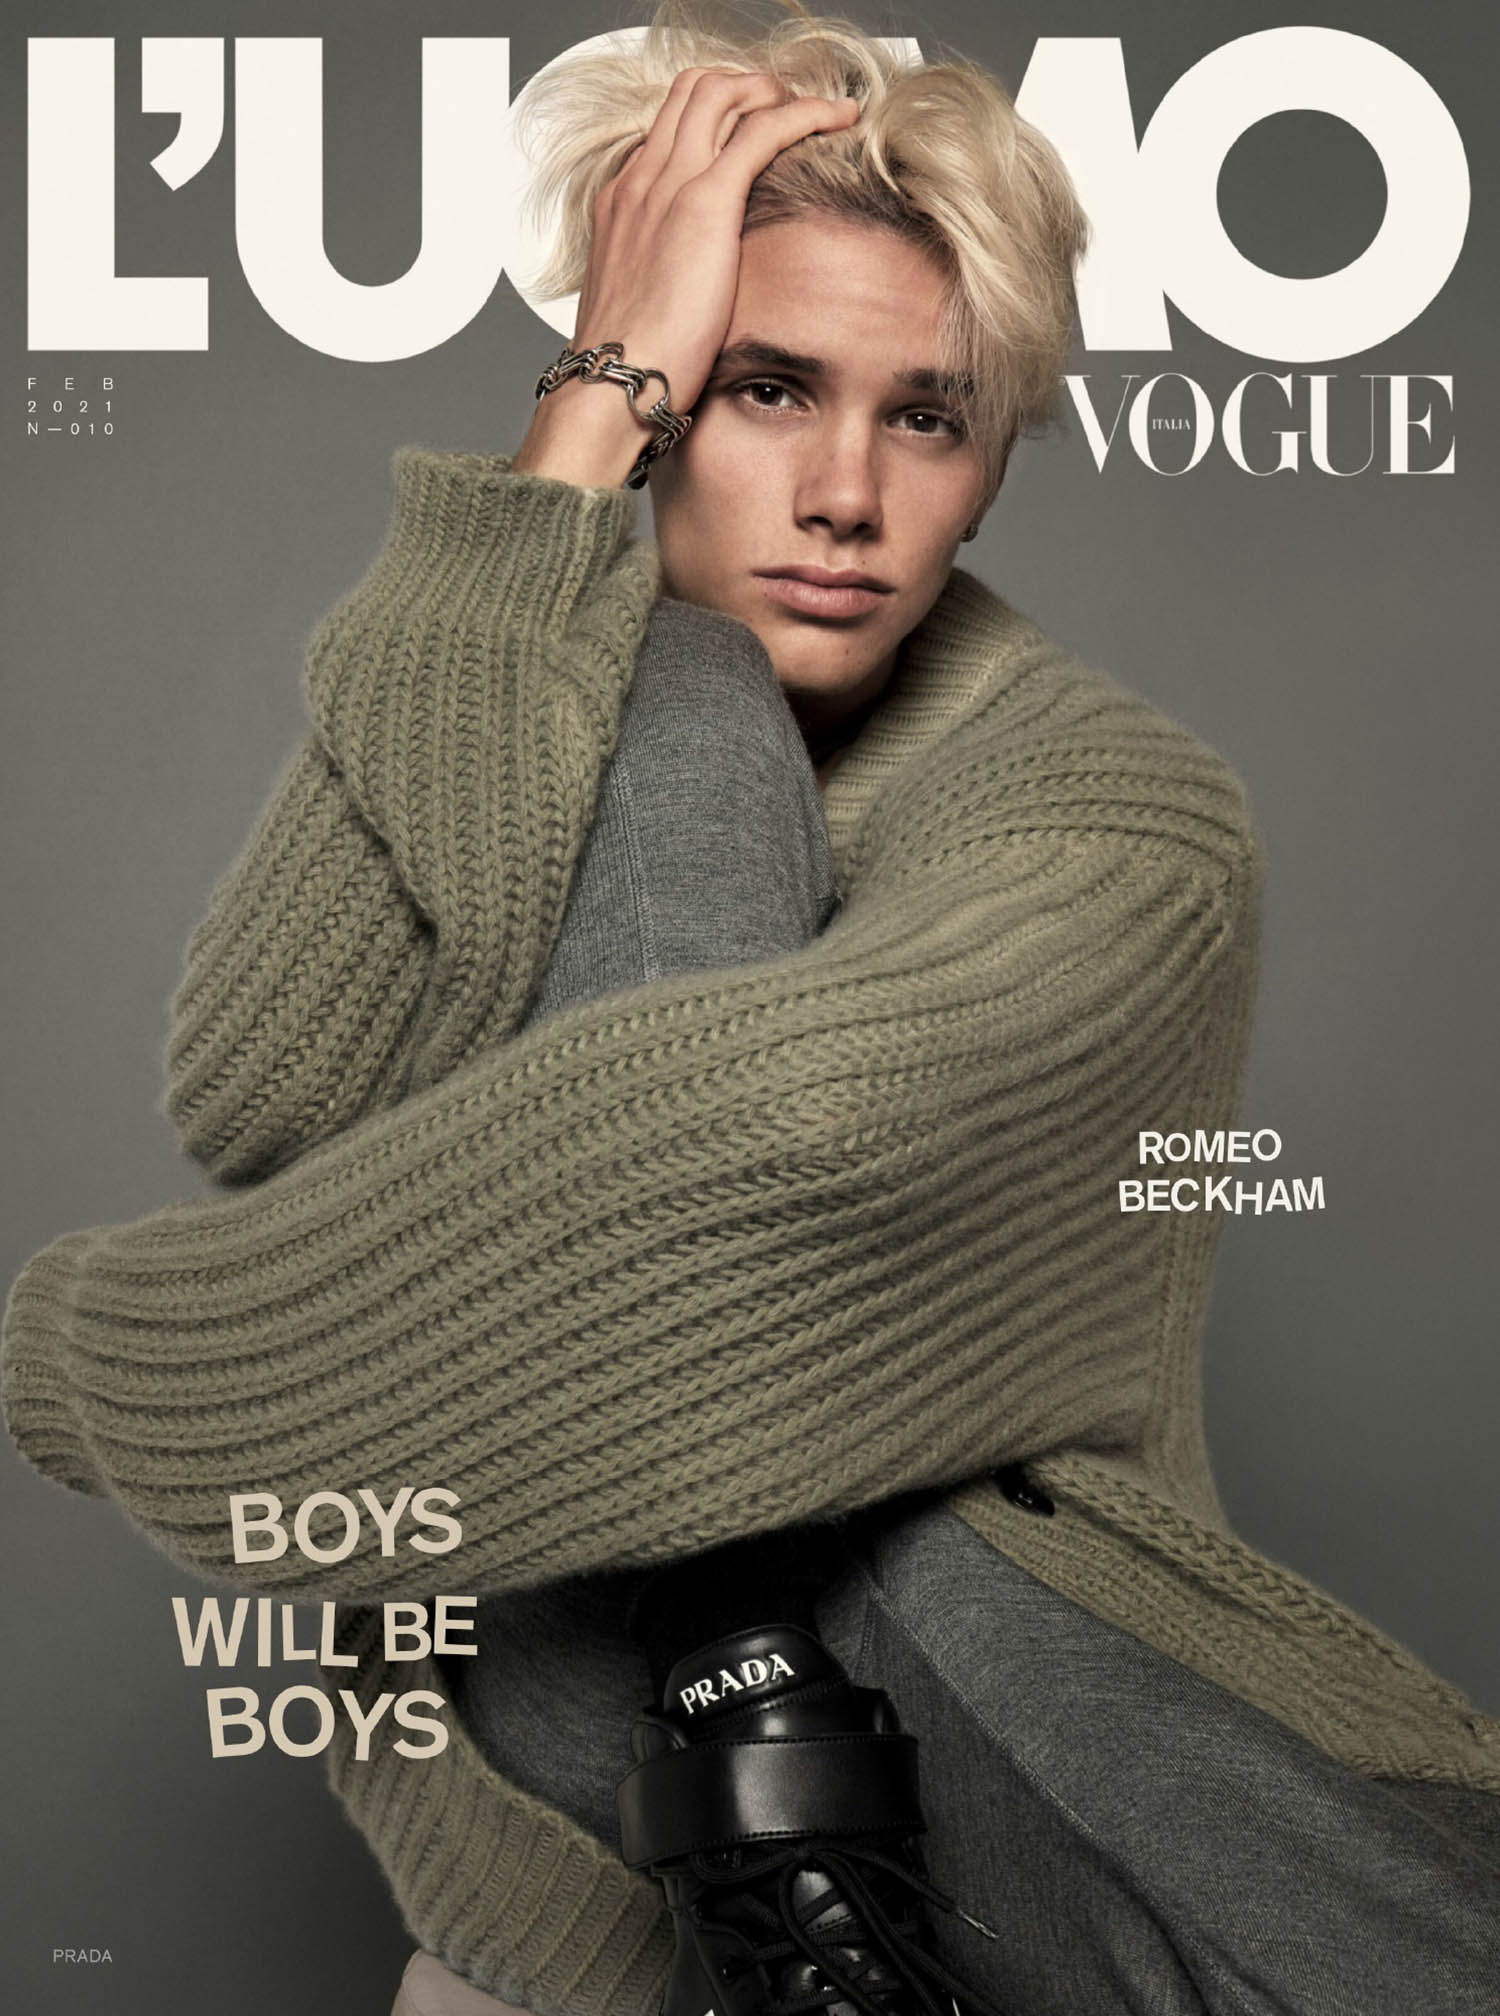 Romeo Beckham covers L'Uomo Vogue Issue 10 by Mert & Marcus